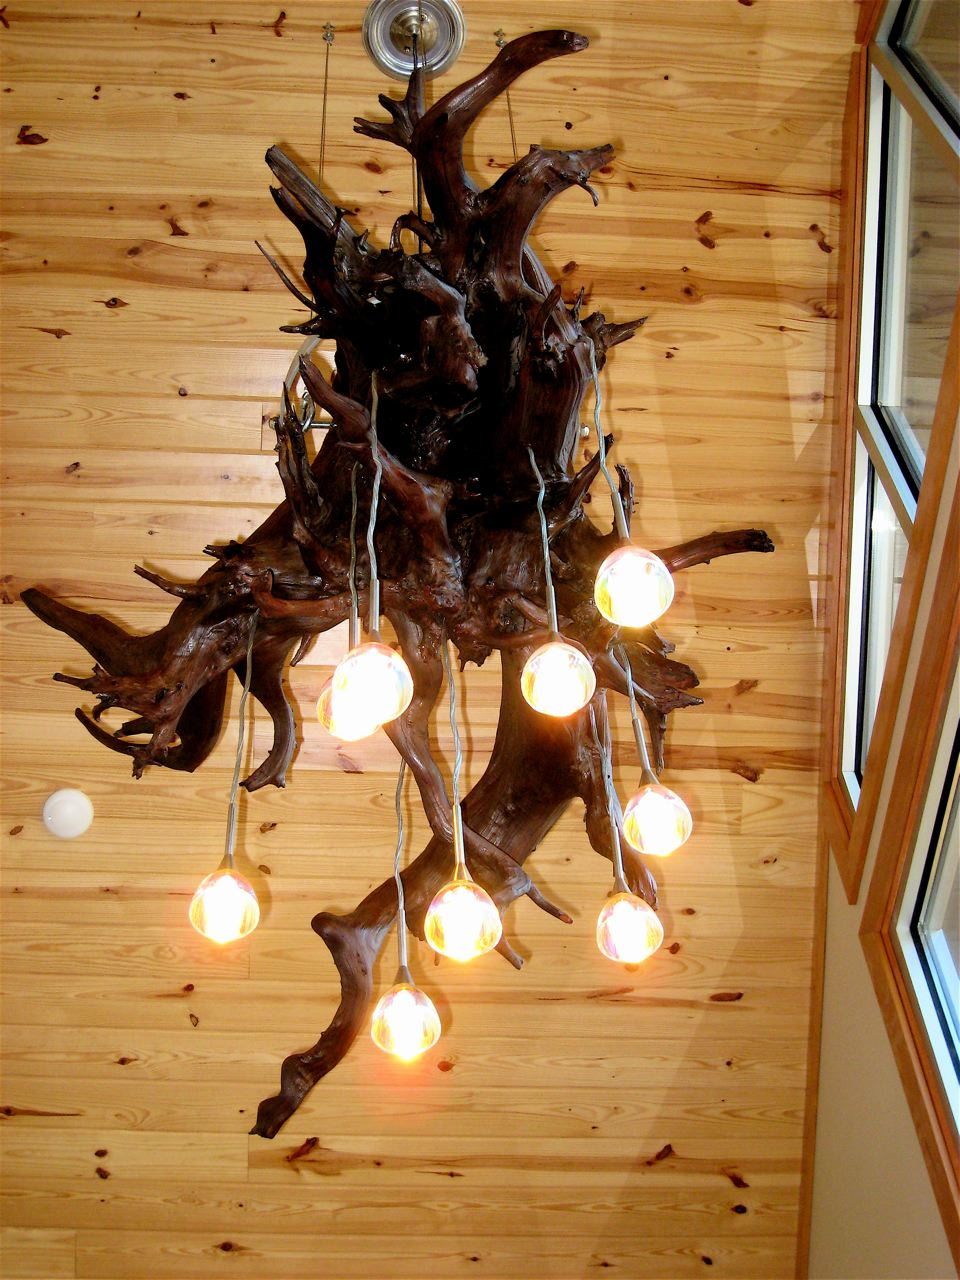 Driftwood Tree Stump & Driftwood Light u2014 Art Barn Studios